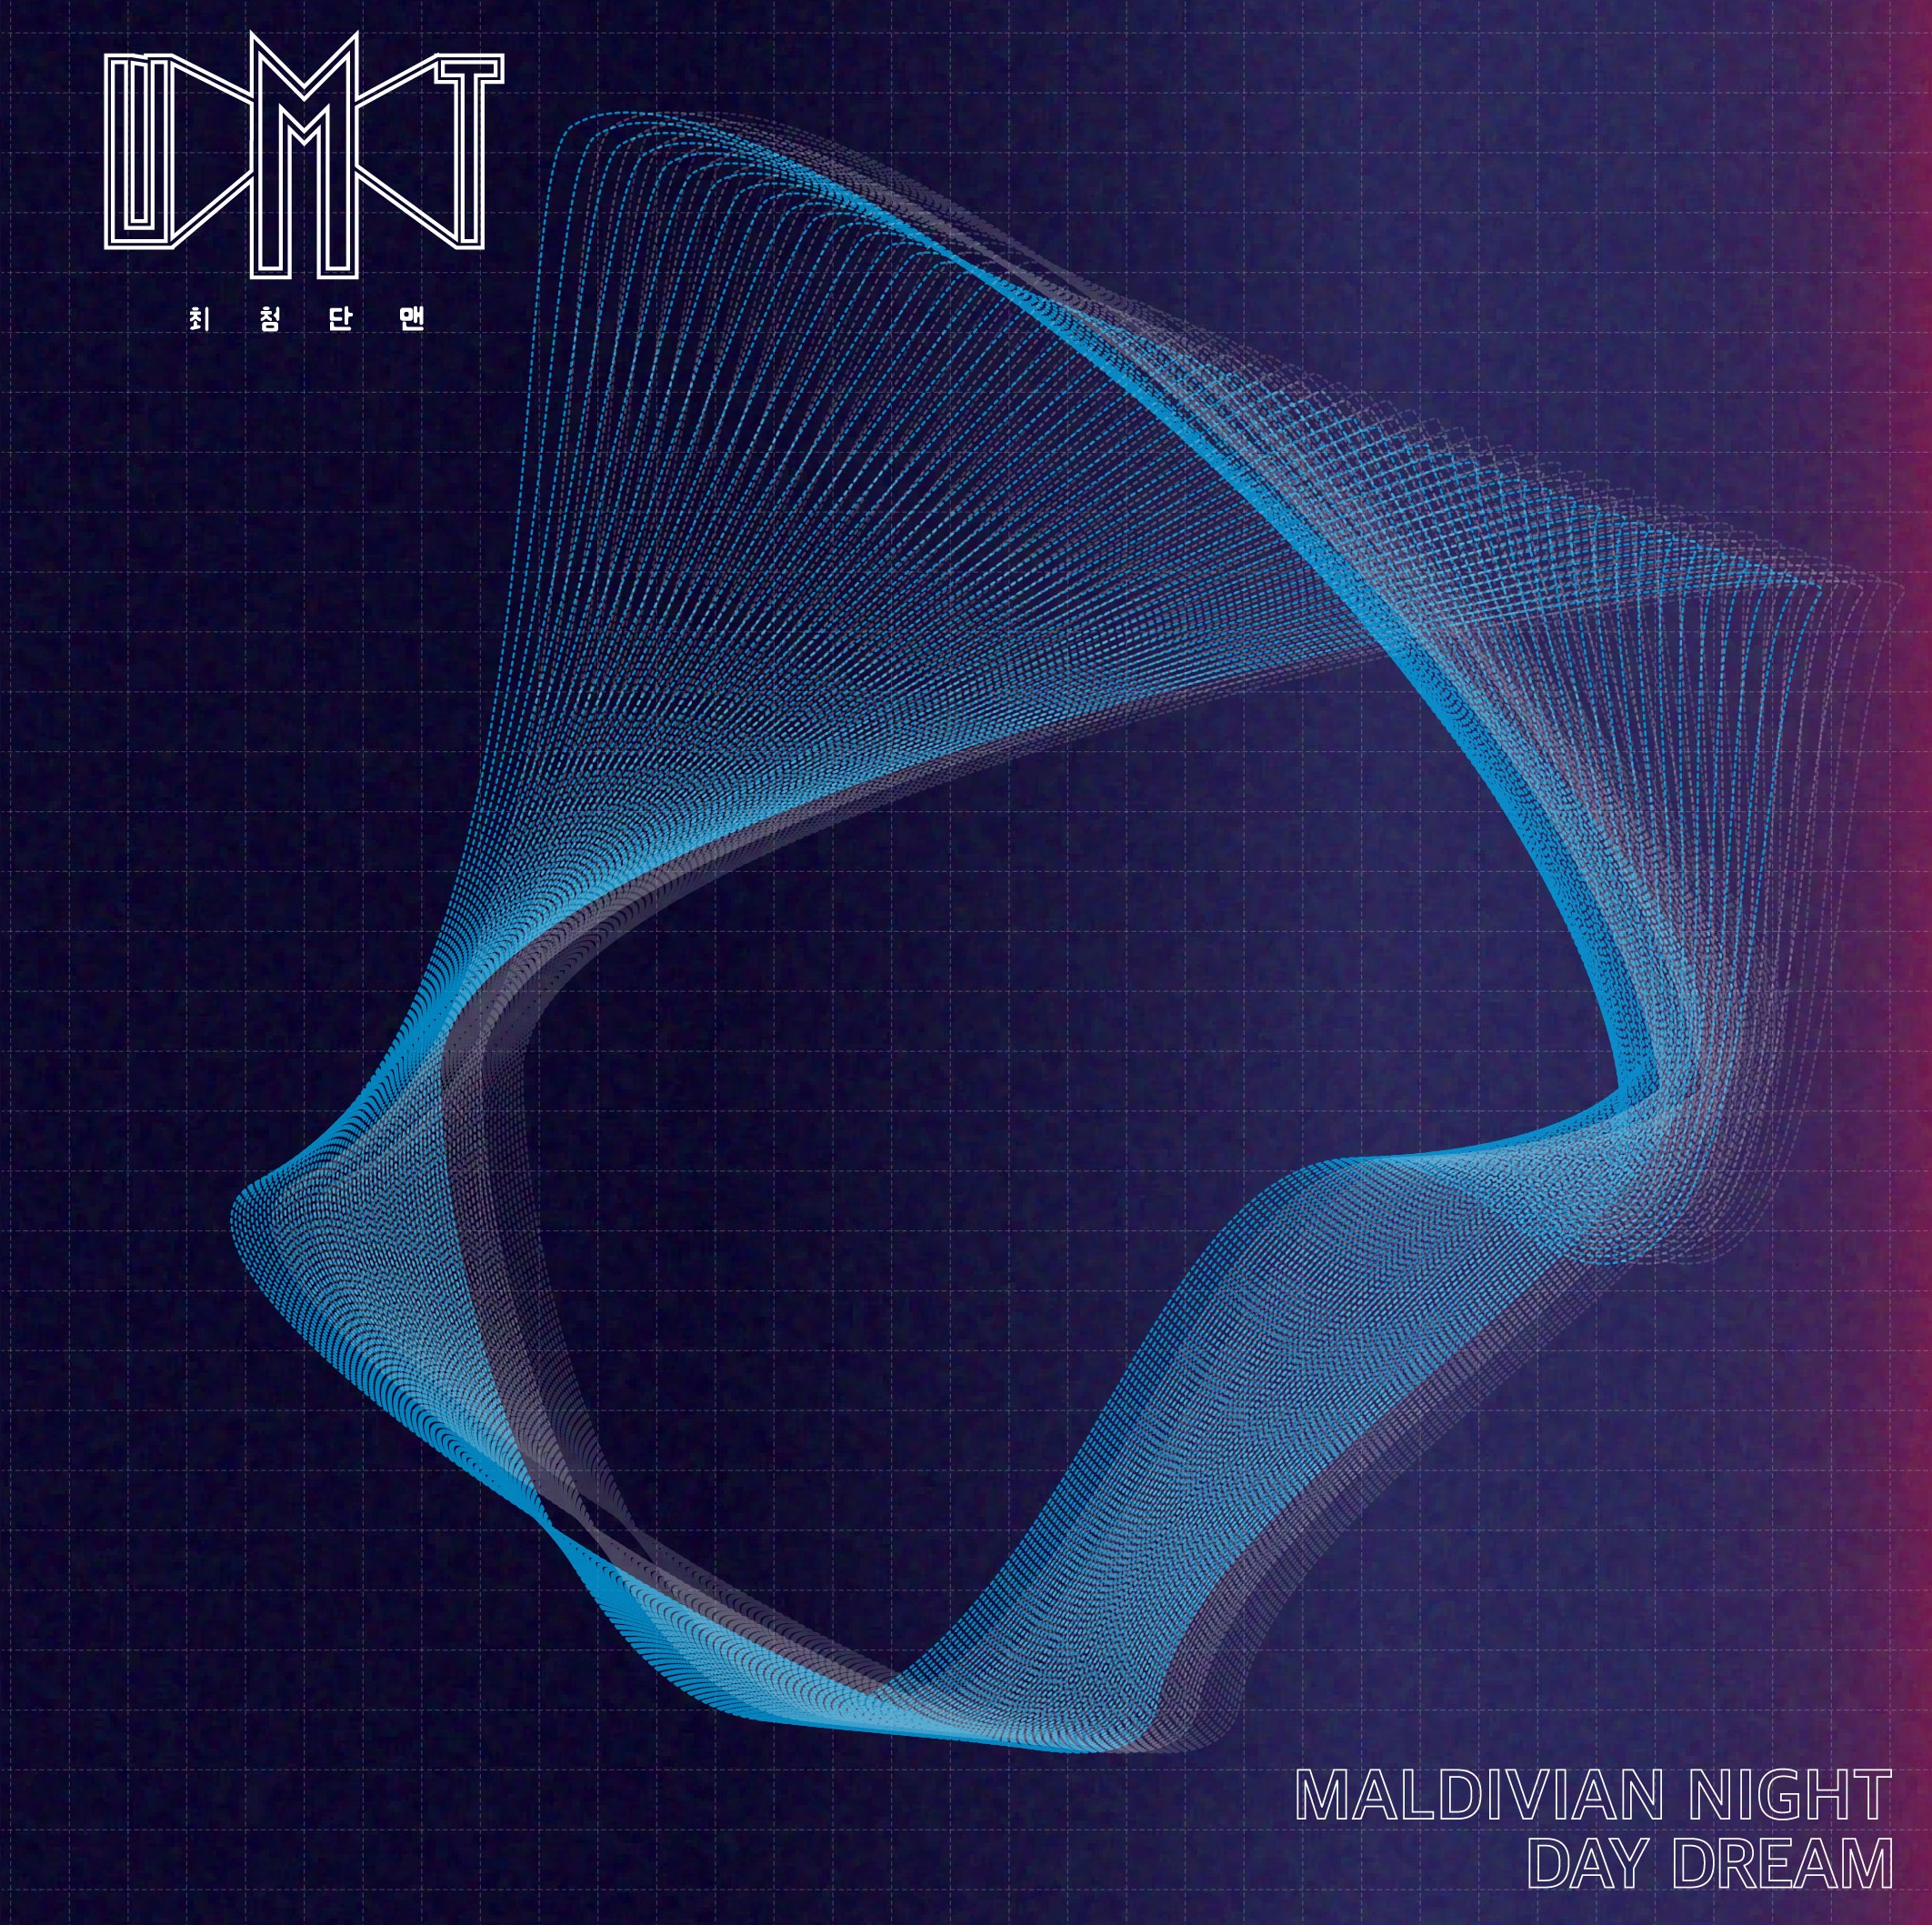 UMT / MALDIVIAN NIGHT / DAY DREAM